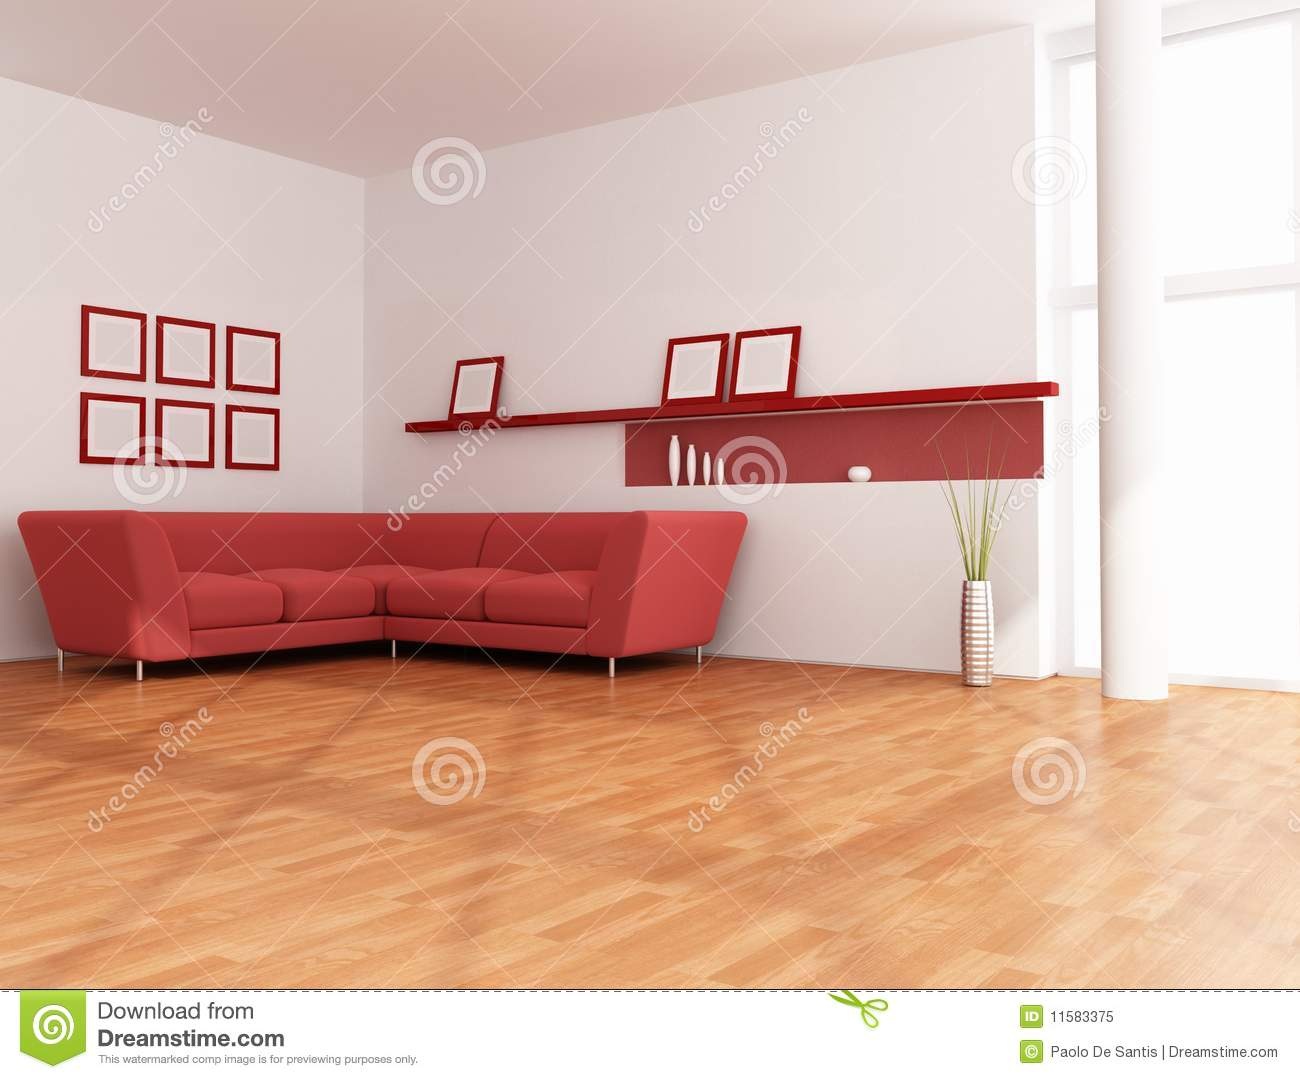 salon rouge et blanc minimaliste stock illustrations. Black Bedroom Furniture Sets. Home Design Ideas